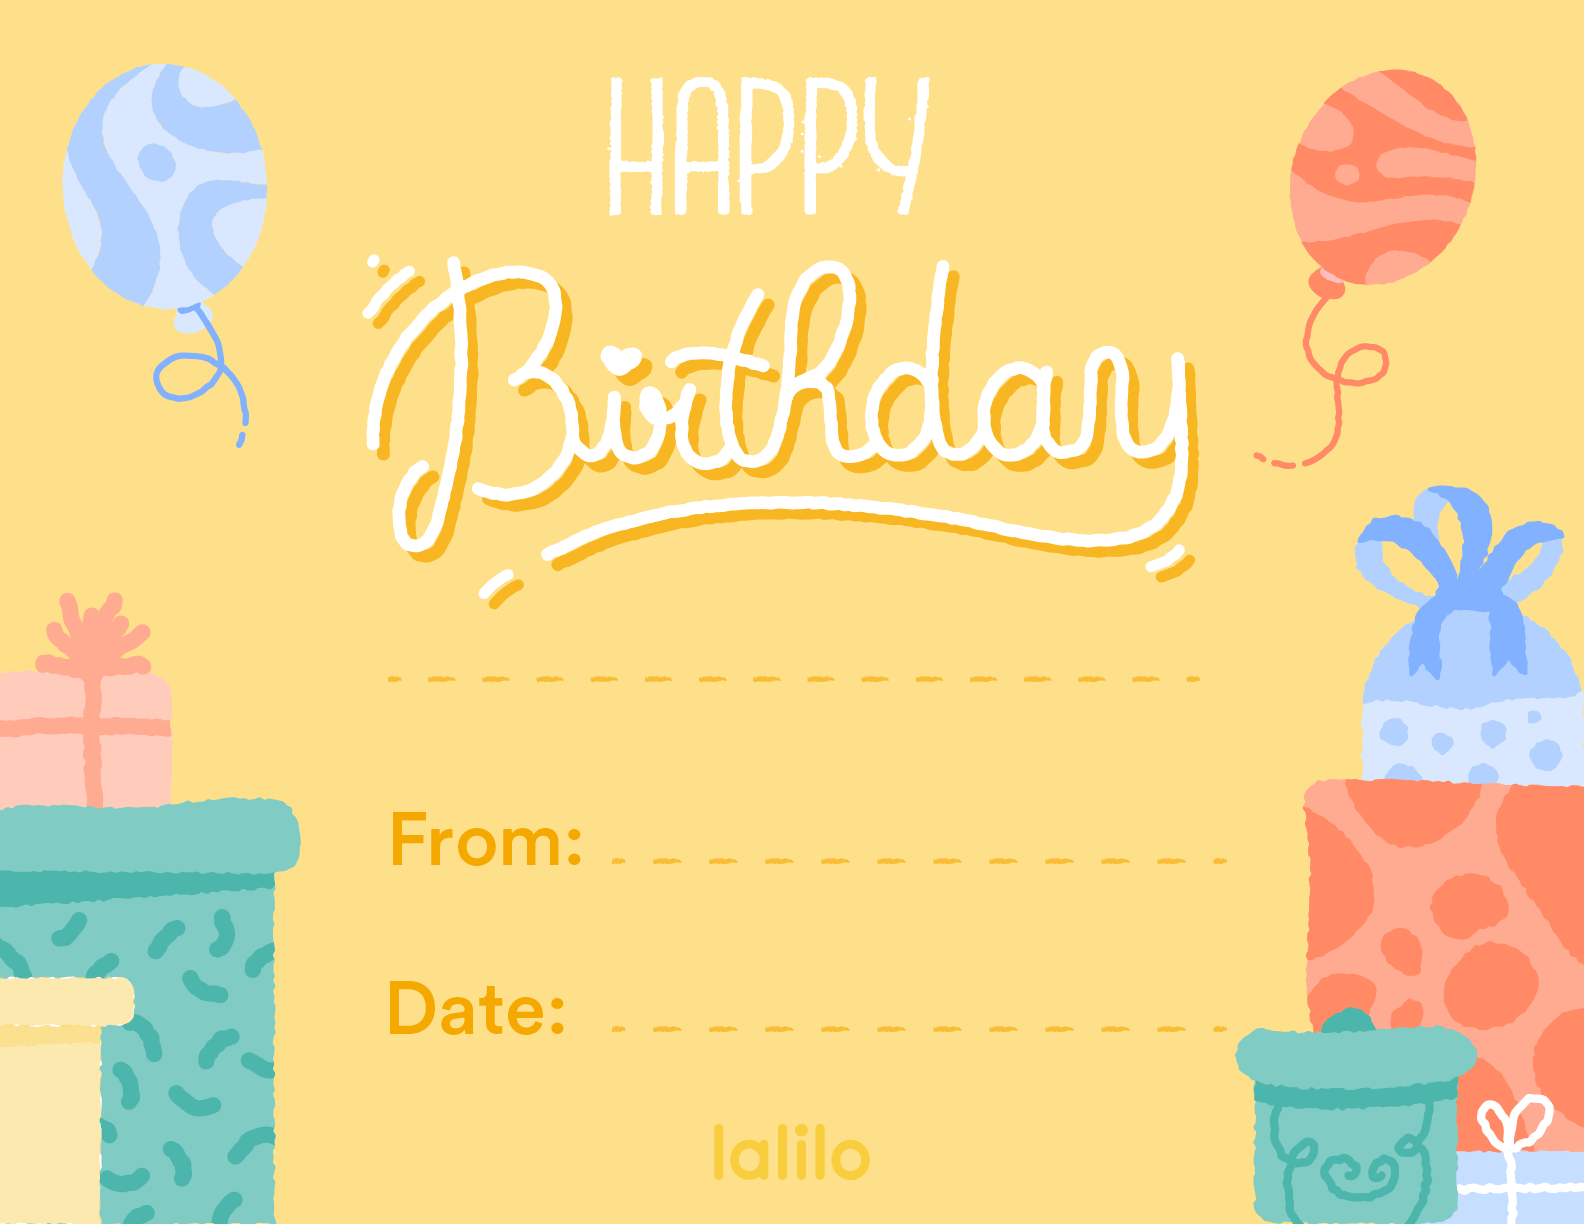 Ebirthday Cards For Students